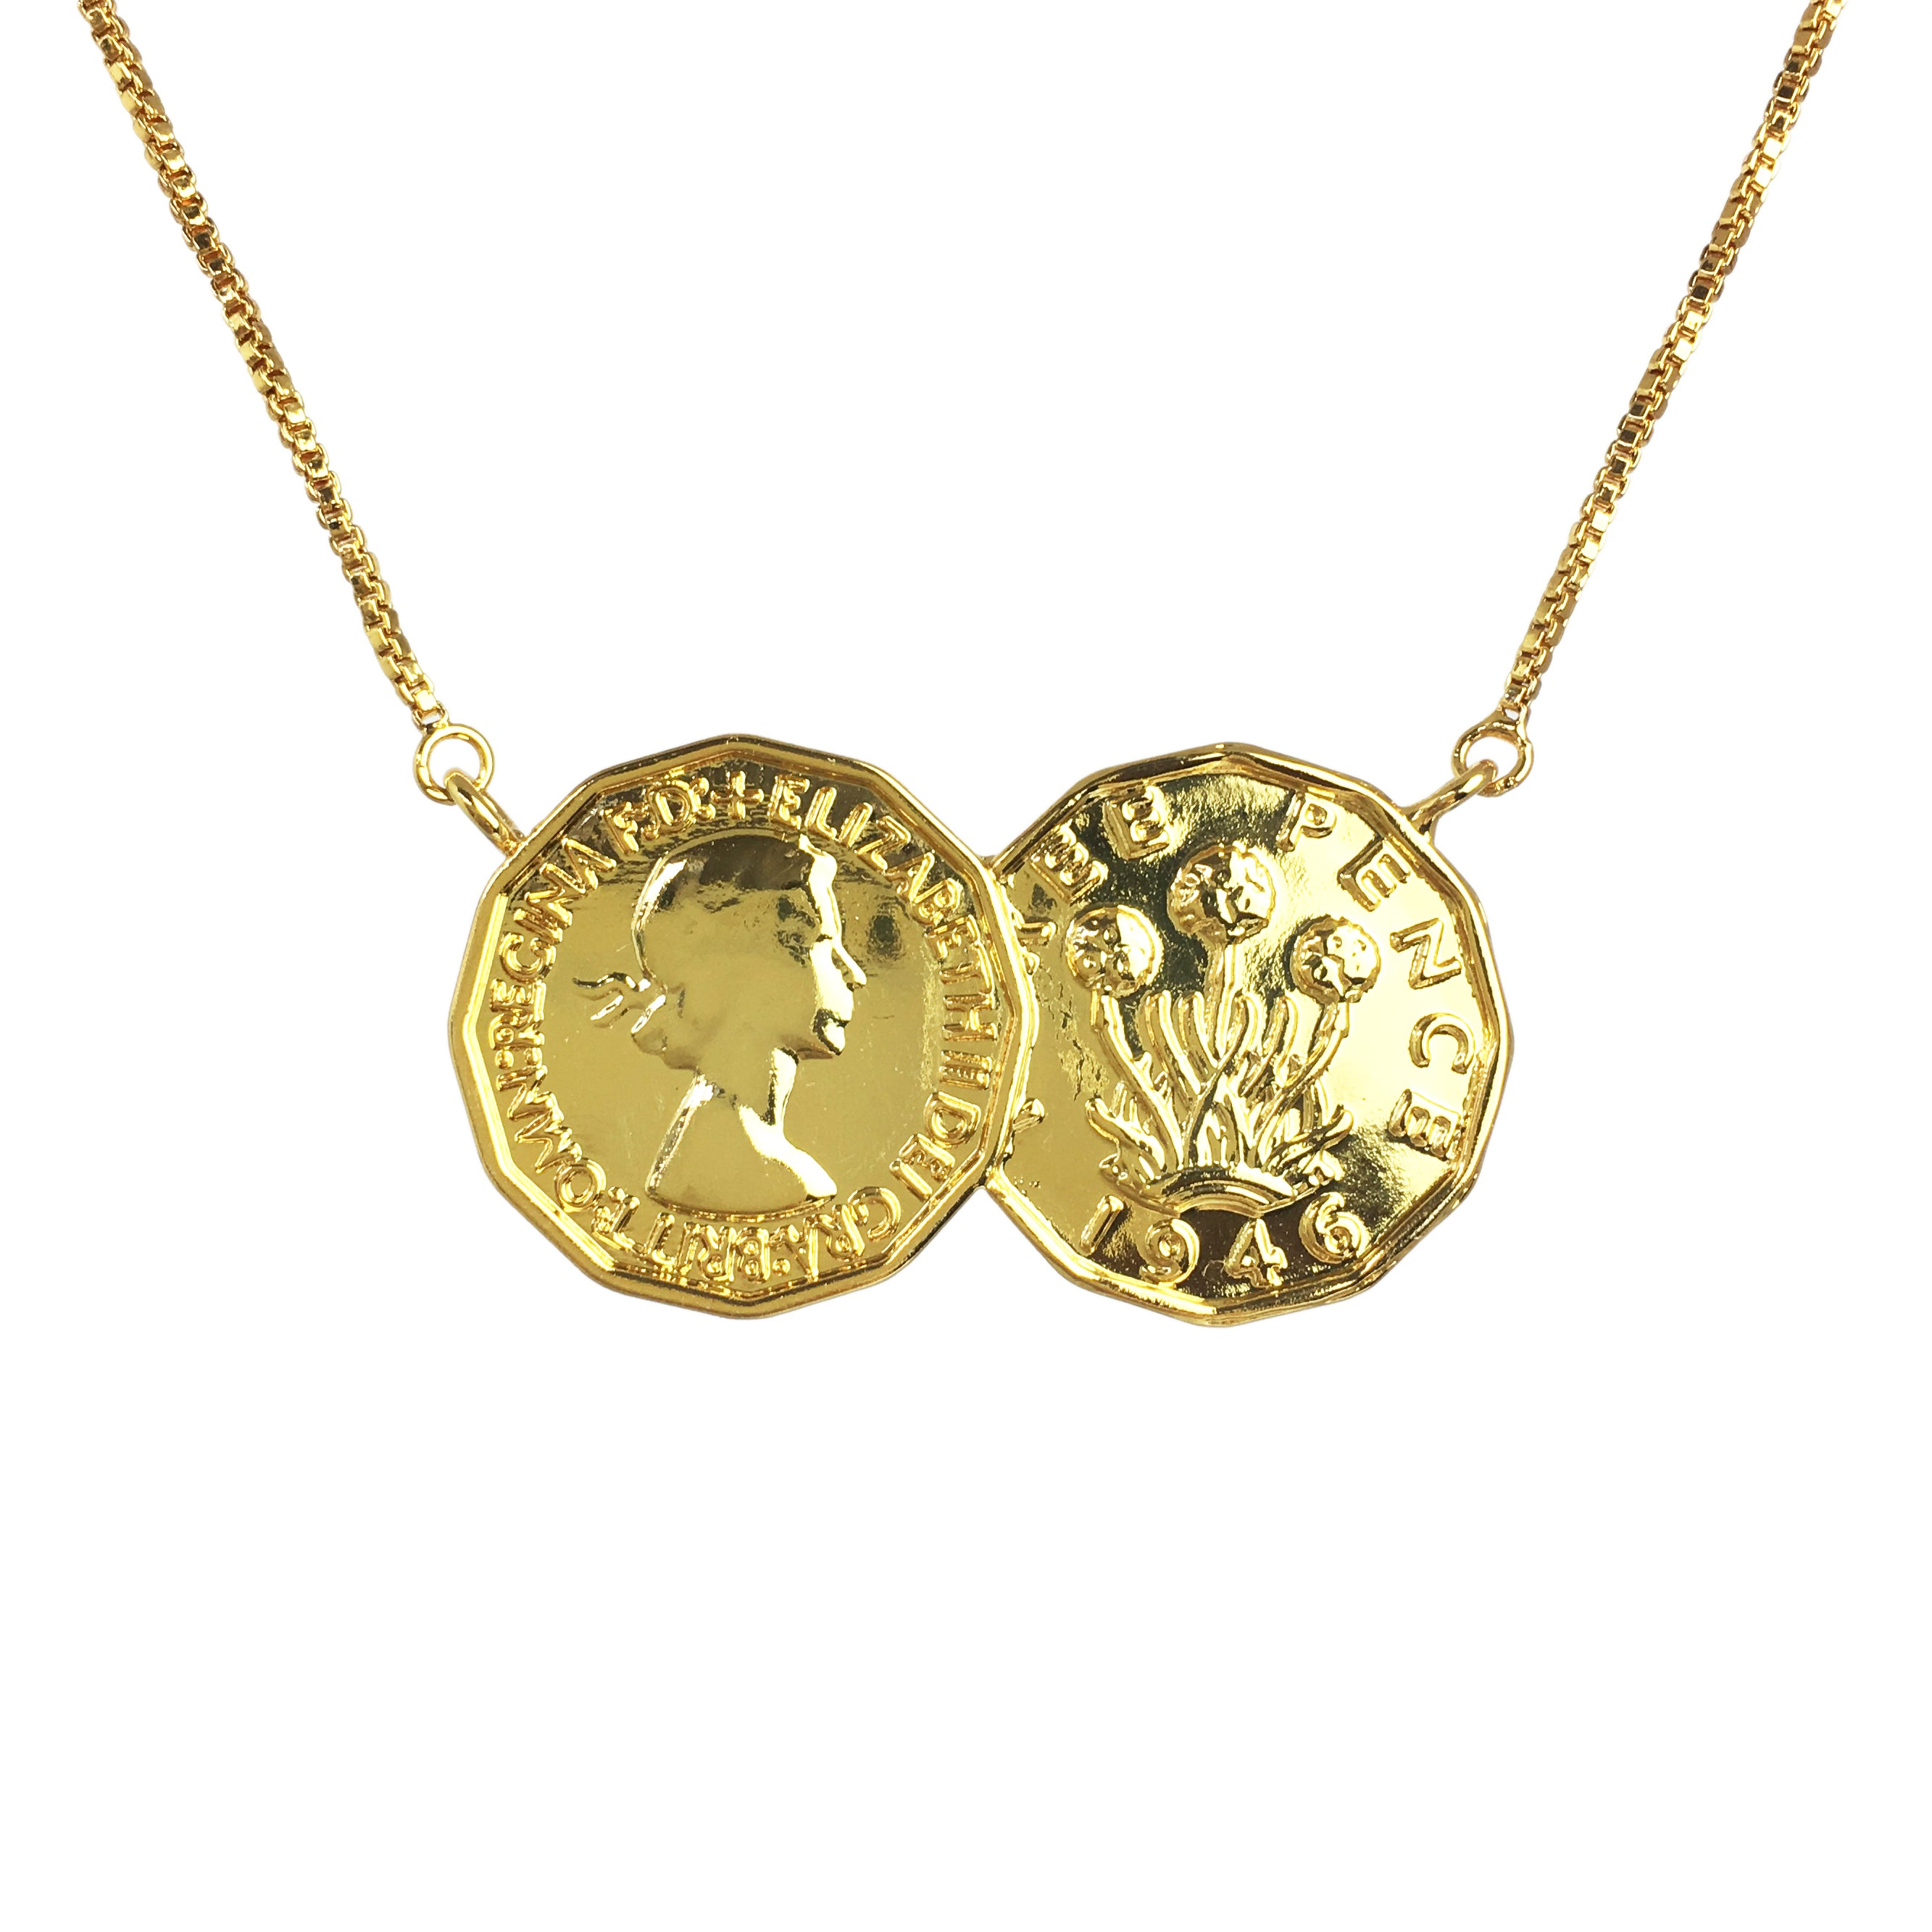 94e50887ecb5d The ICOINIC Collection - Coin Jewellery   www.sparklingjewellery.com